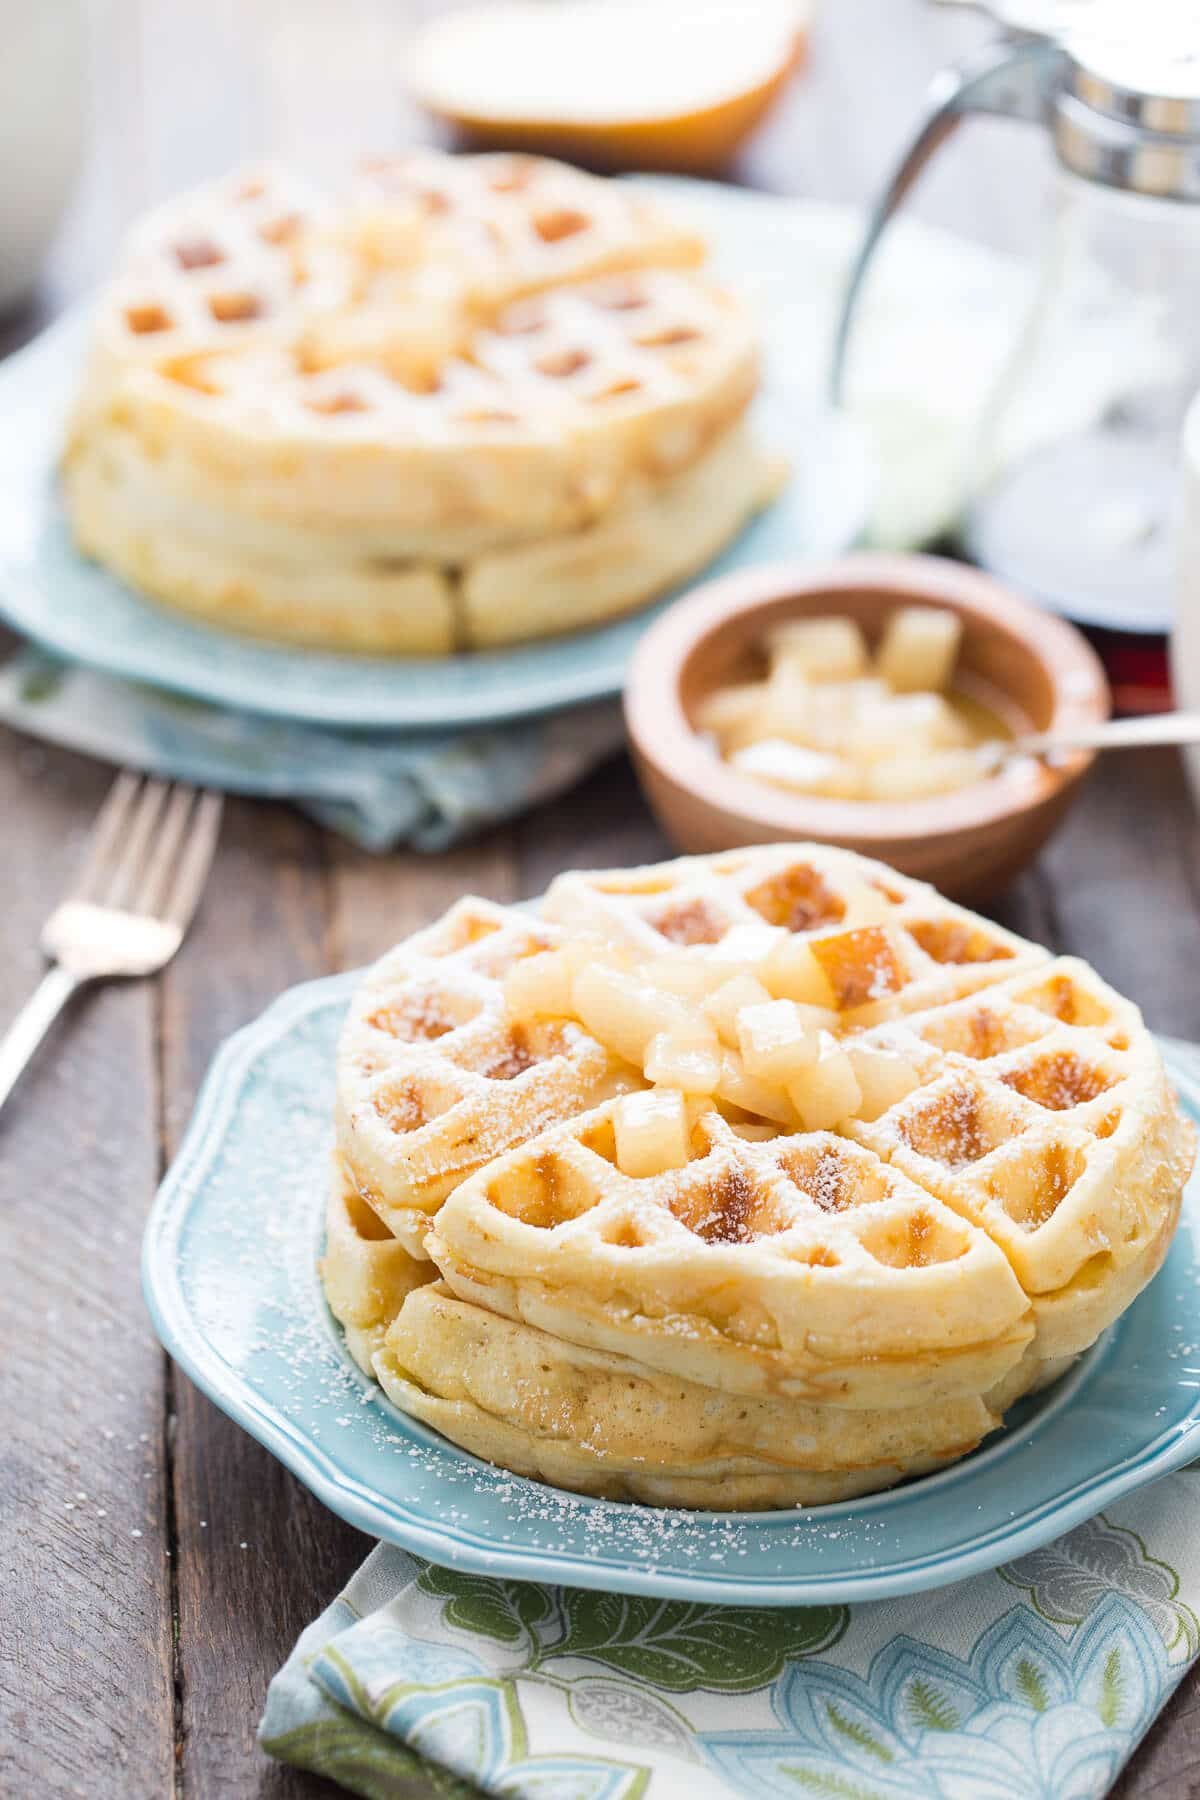 Homemade waffles are best, especially when they are topped with homemade spiced pears!